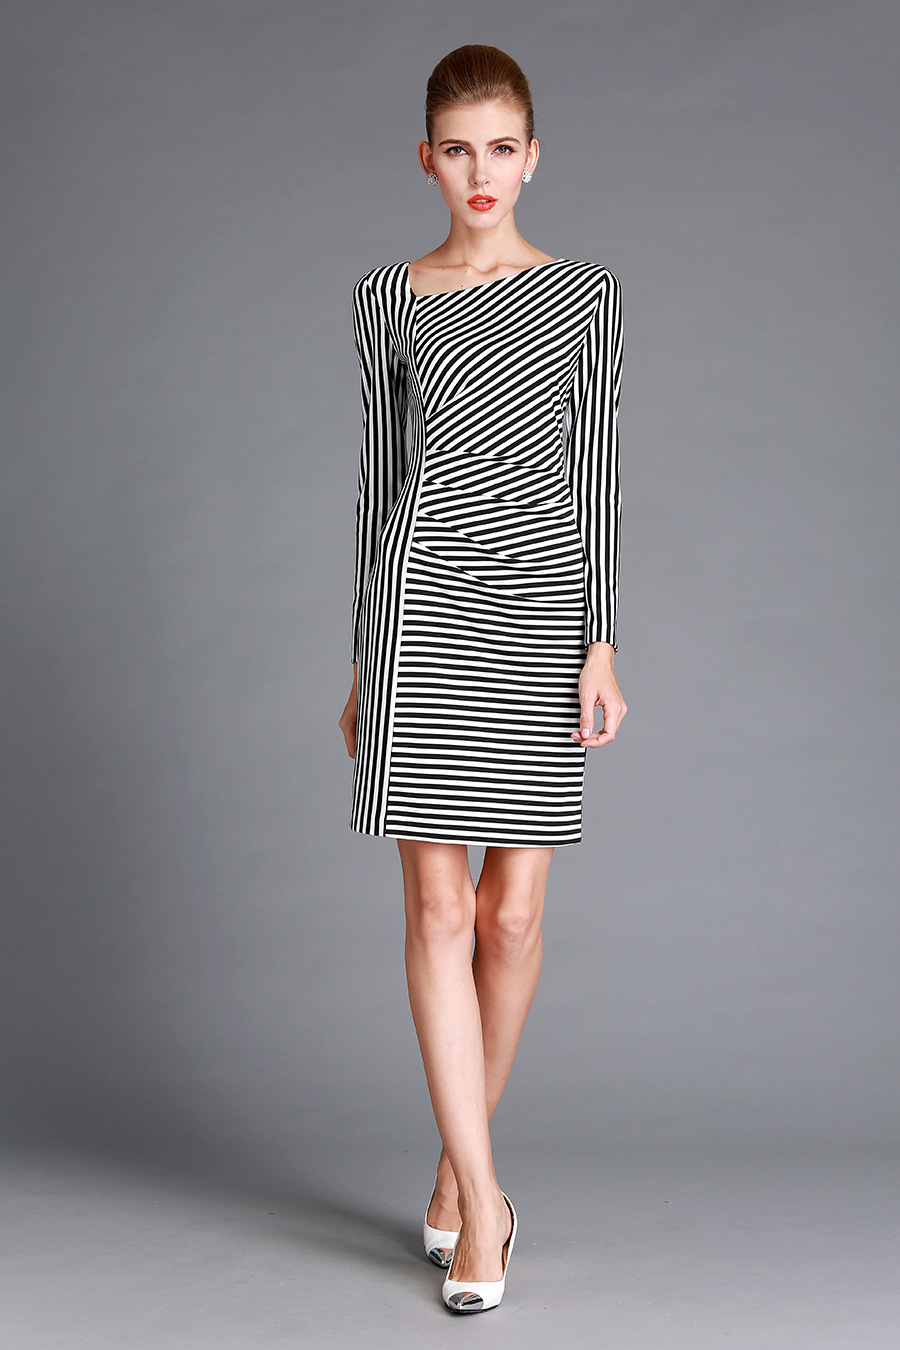 Chinese Wholesale Clothing Manufacturers